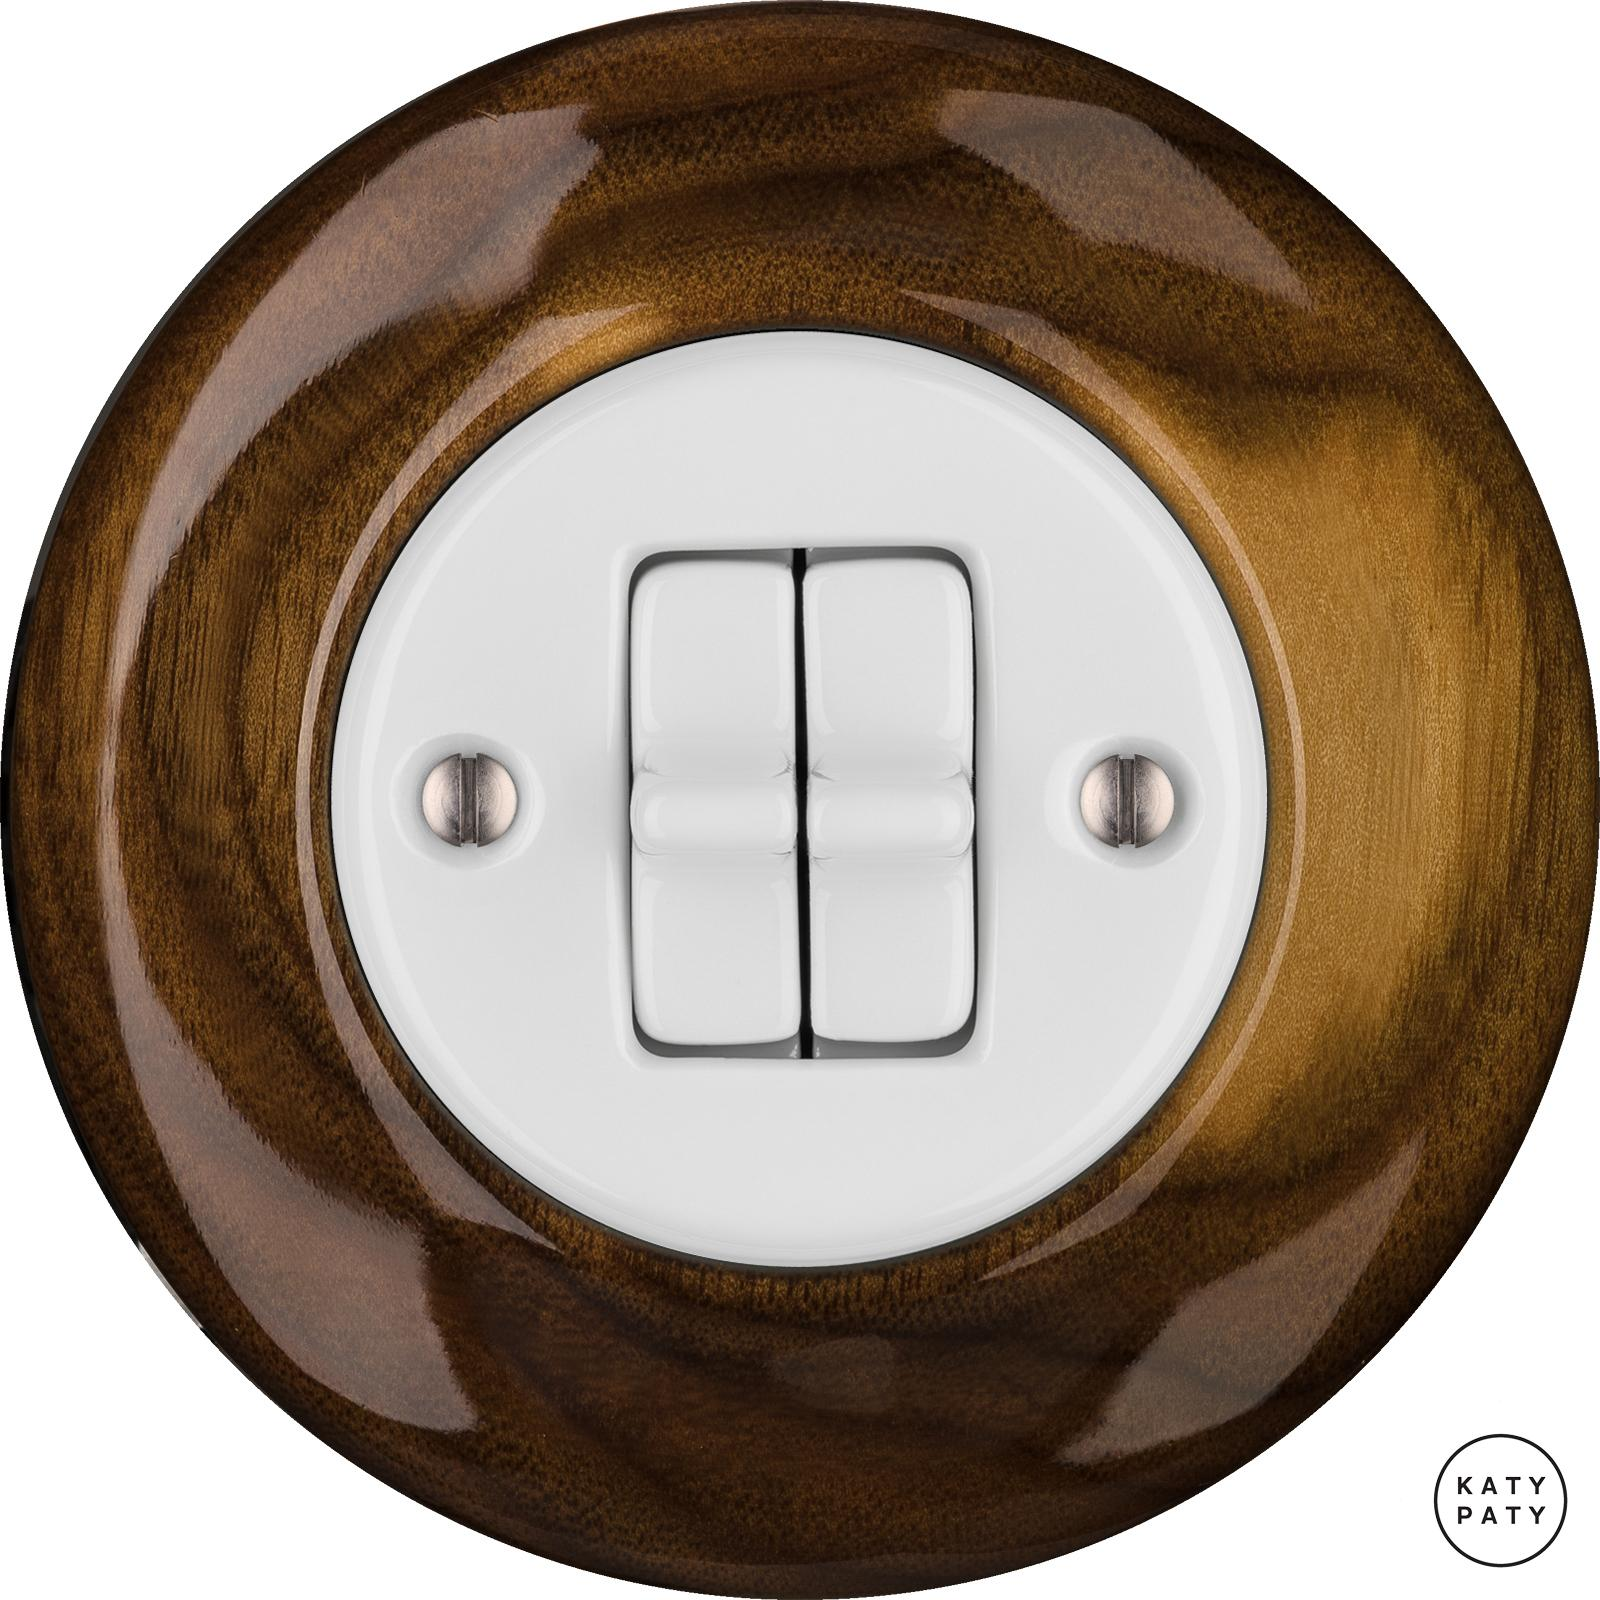 Porcelain toggle switches - a 2 gang ()  - NUC MAG | Katy Paty